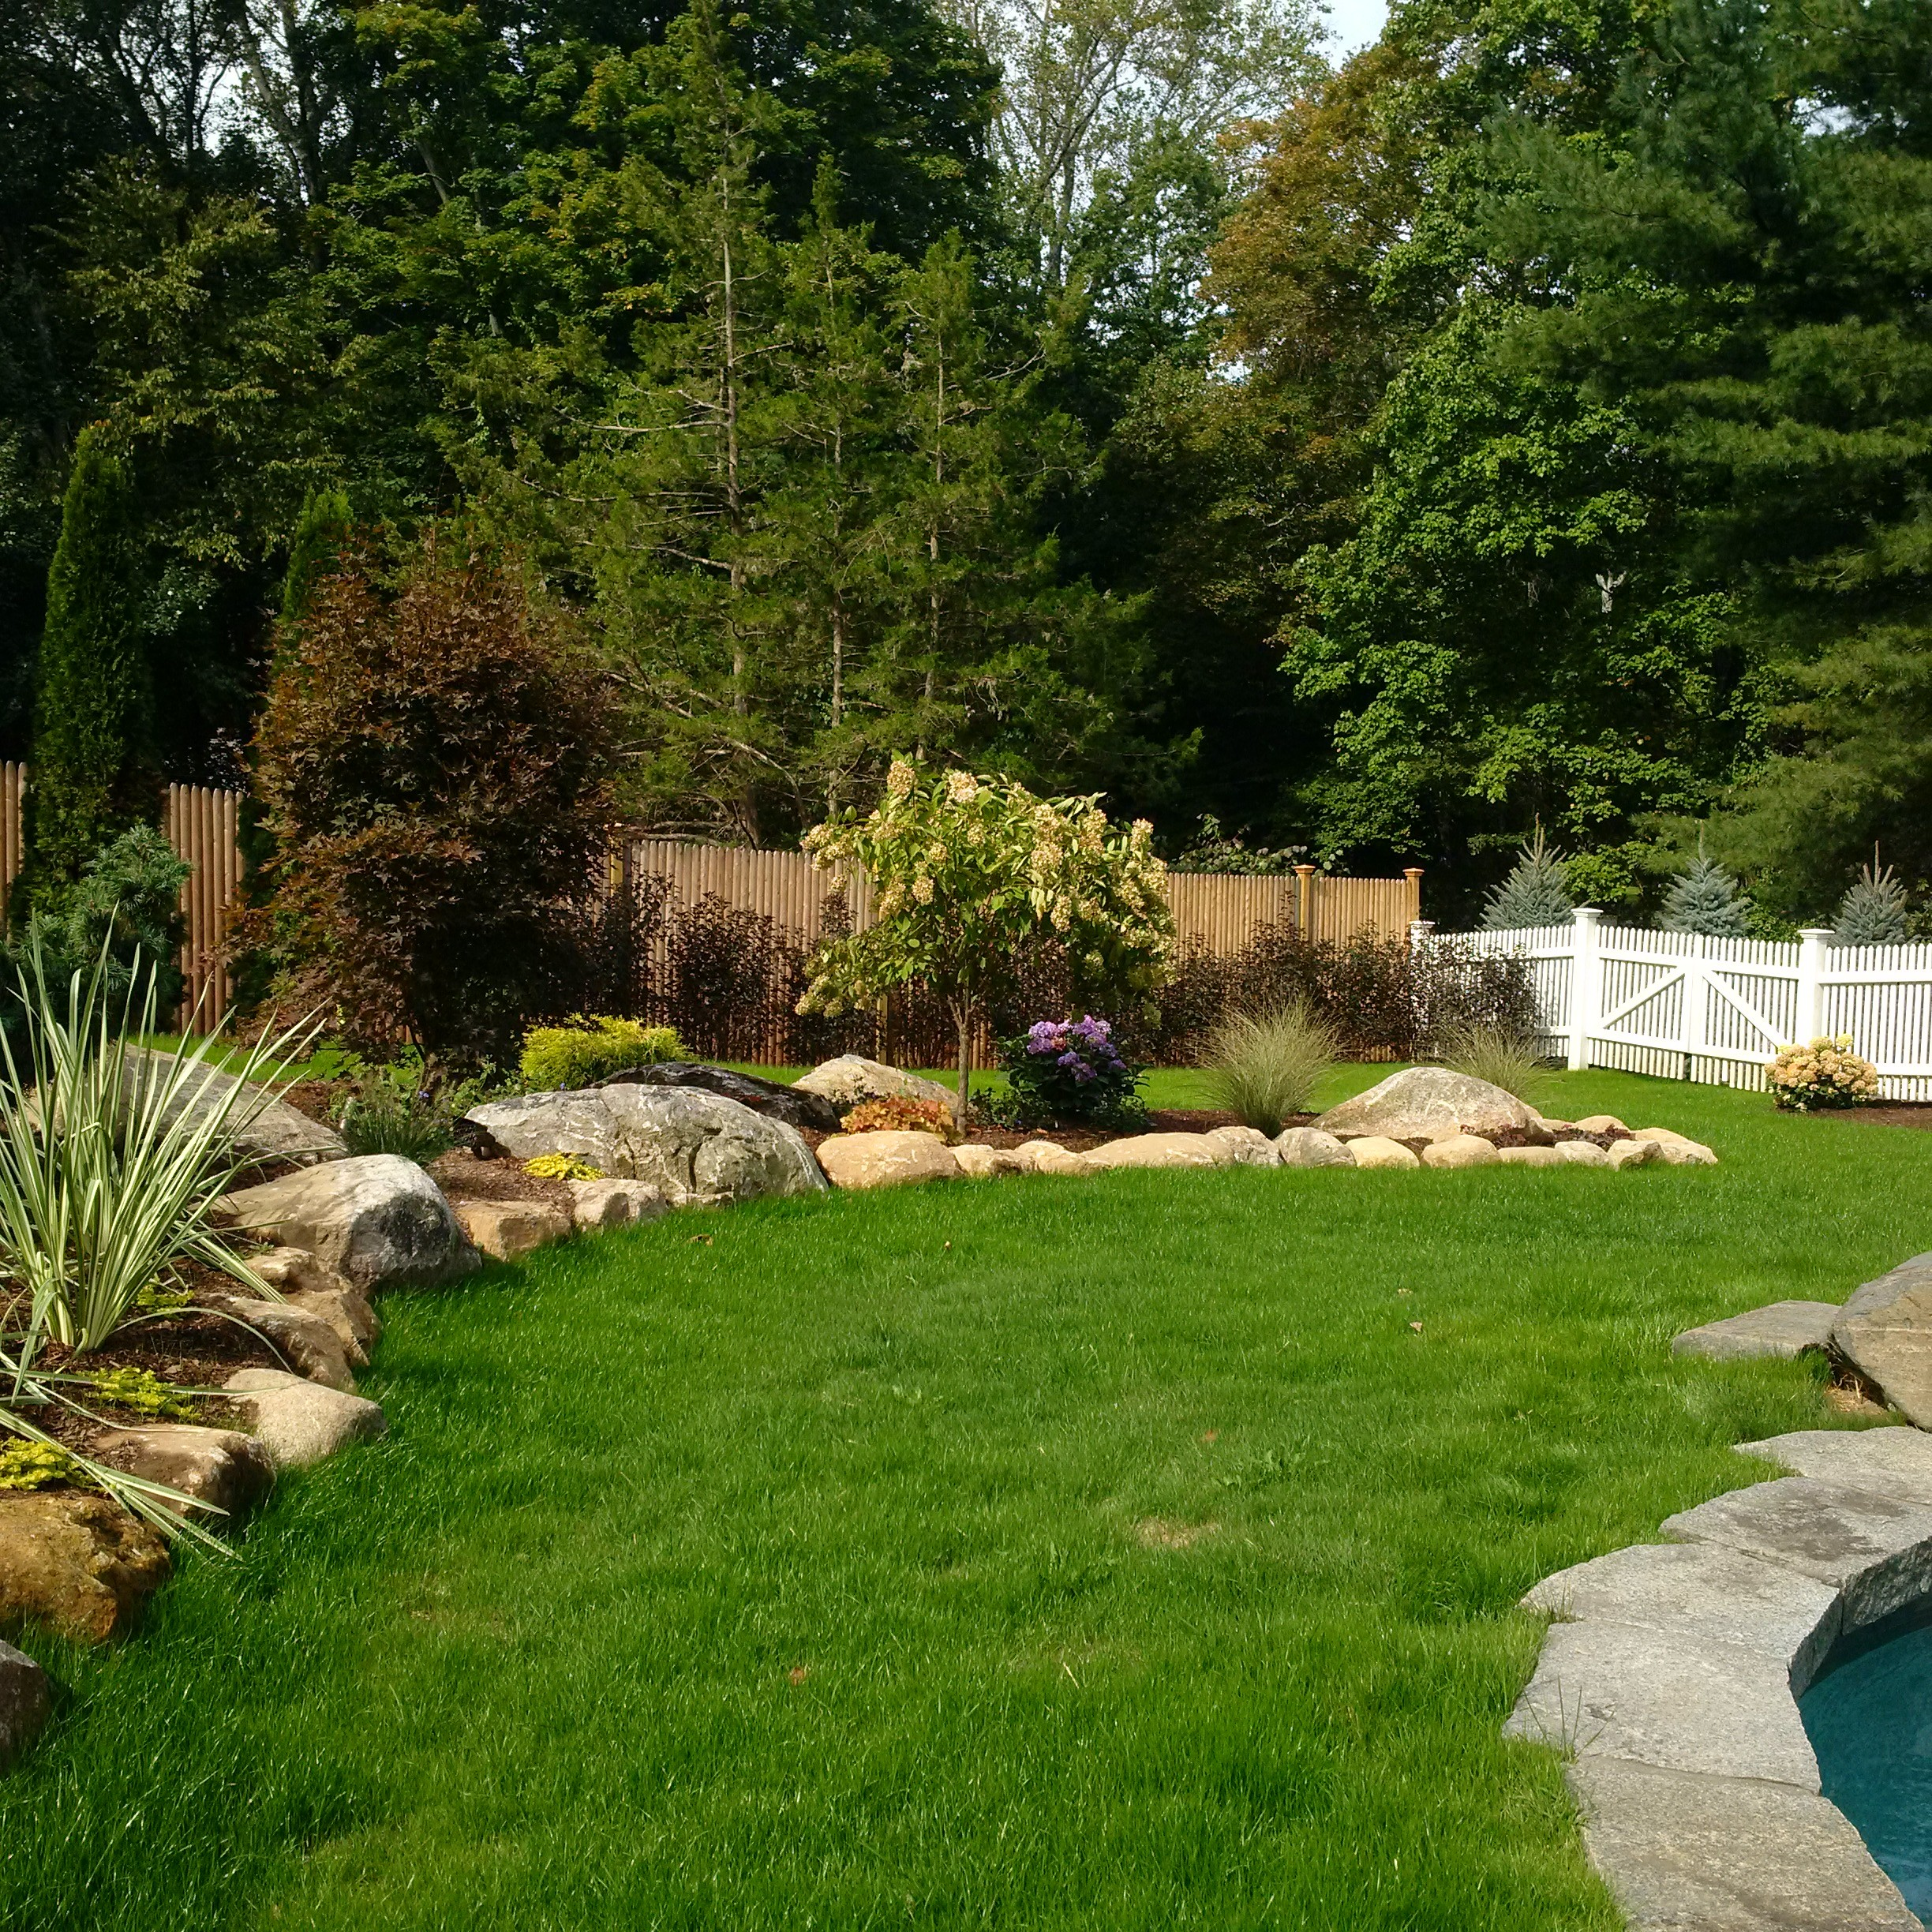 New canaan landscaping masonry bolton landscape design for New landscape design